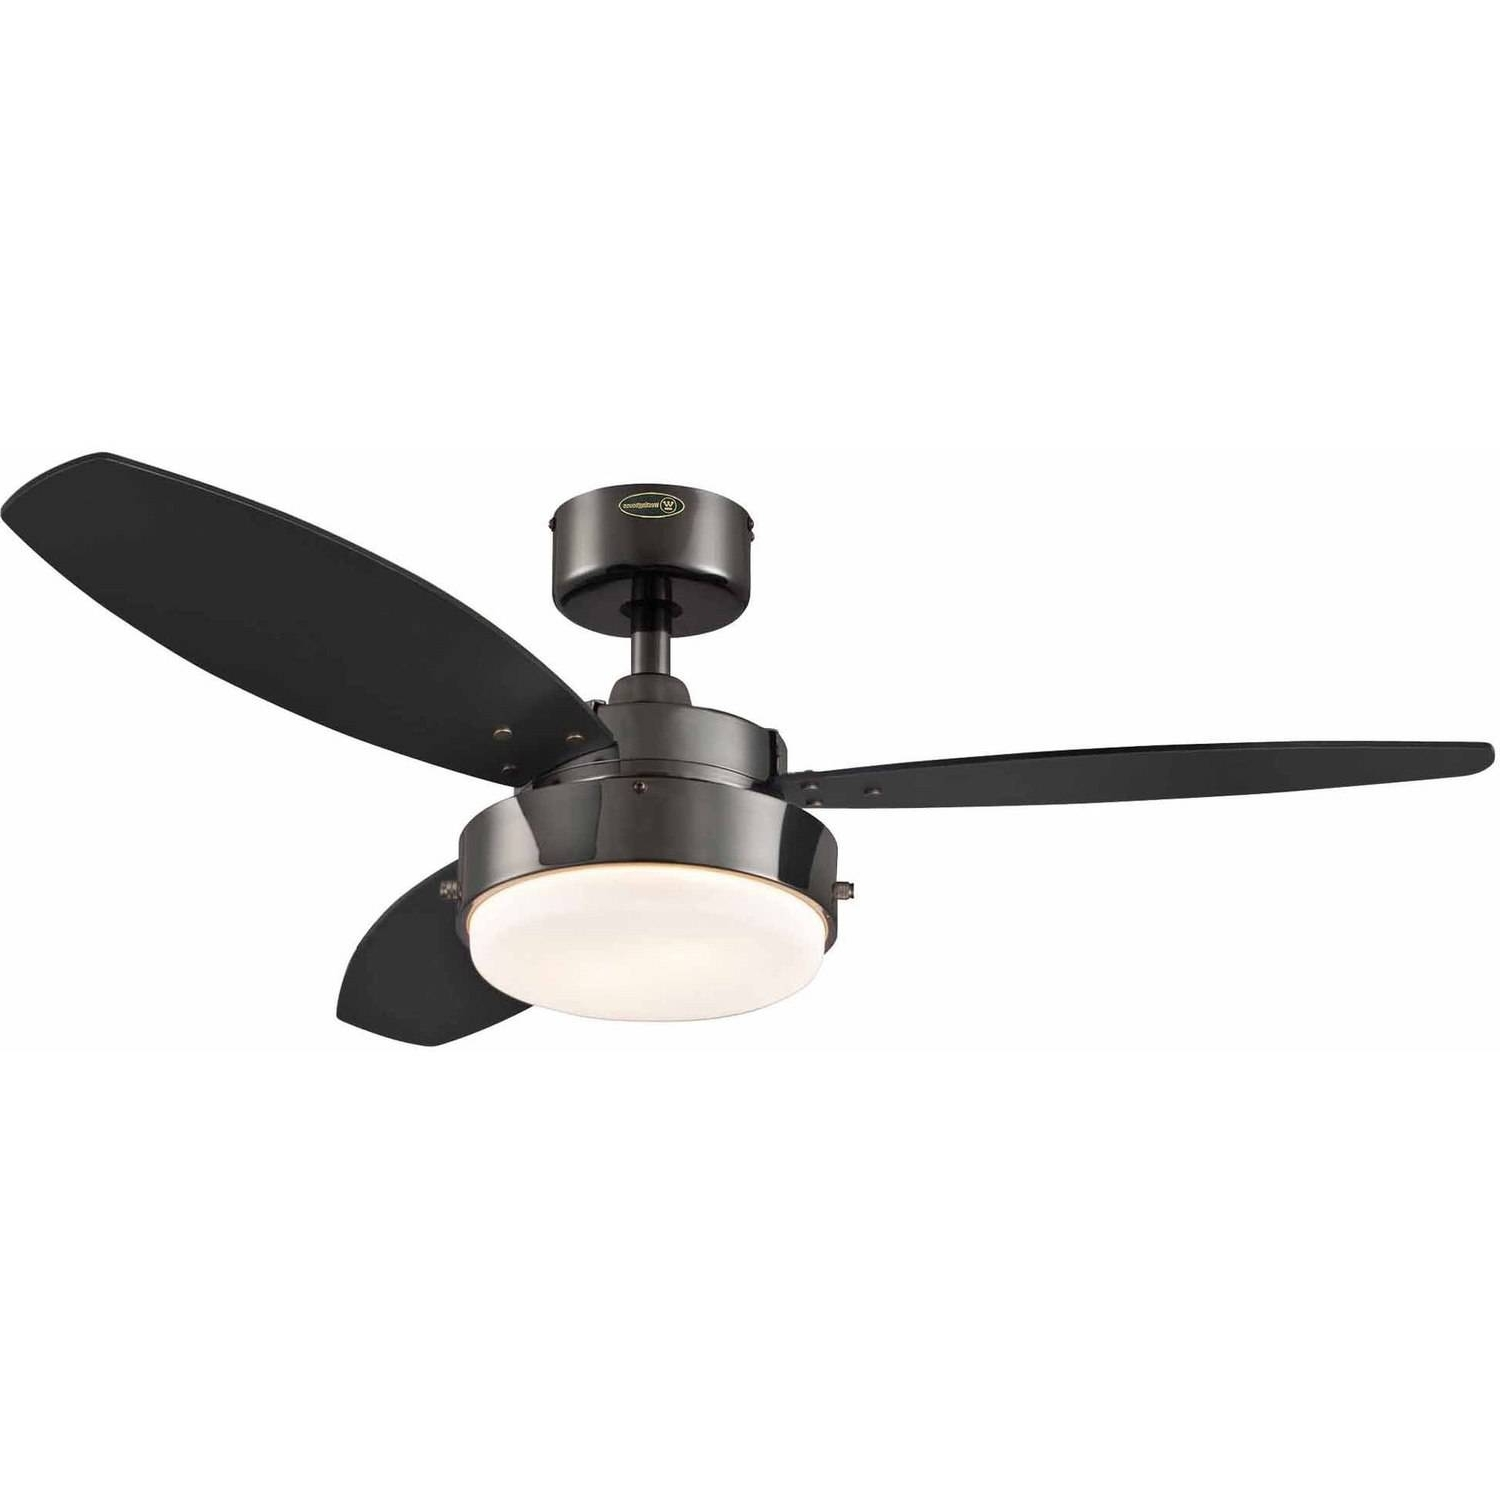 "36 Inch Outdoor Ceiling Fans Pertaining To Most Current Westinghouse 7876400 42"" Gun Metal 3 Blade Reversible Ceiling Fan (Gallery 8 of 20)"